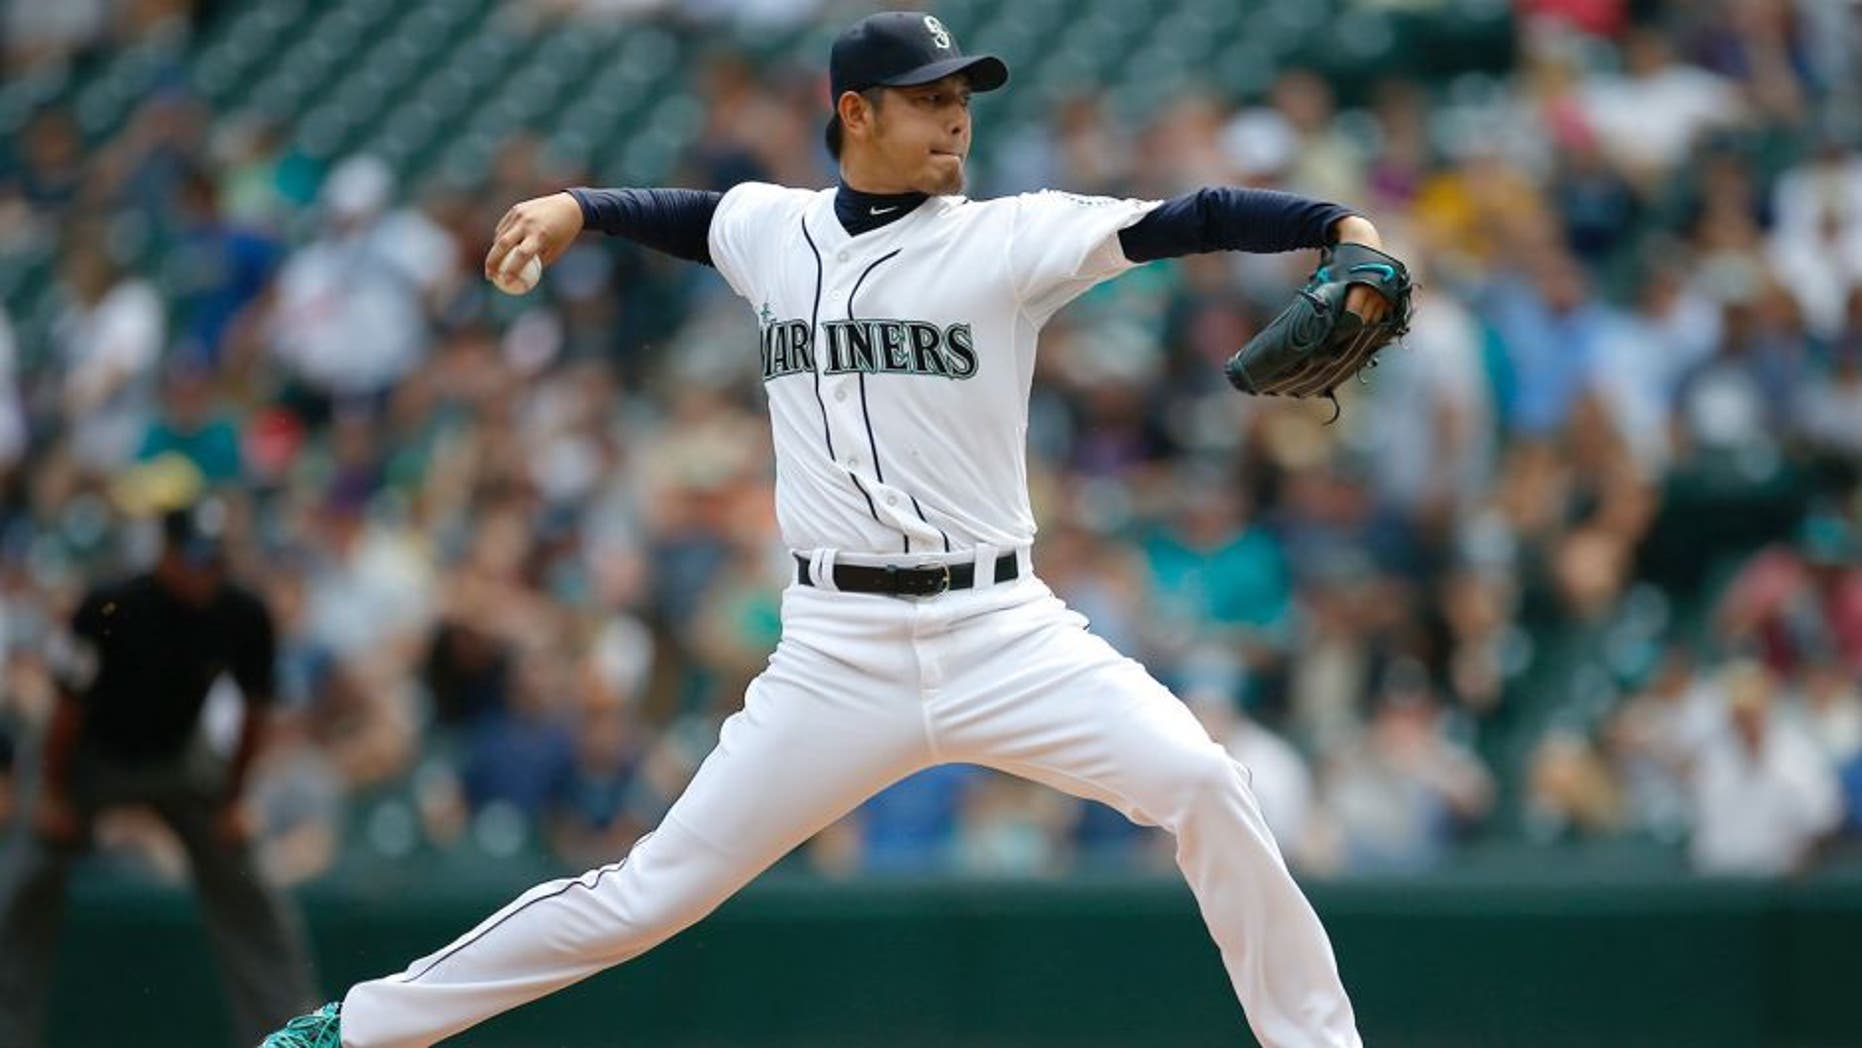 SEATTLE, WA - AUGUST 12: Starting pitcher Hisashi Iwakuma #18 of the Seattle Mariners pitches against the Baltimore Orioles in the first inning at Safeco Field on August 12, 2015 in Seattle, Washington. (Photo by Otto Greule Jr/Getty Images)